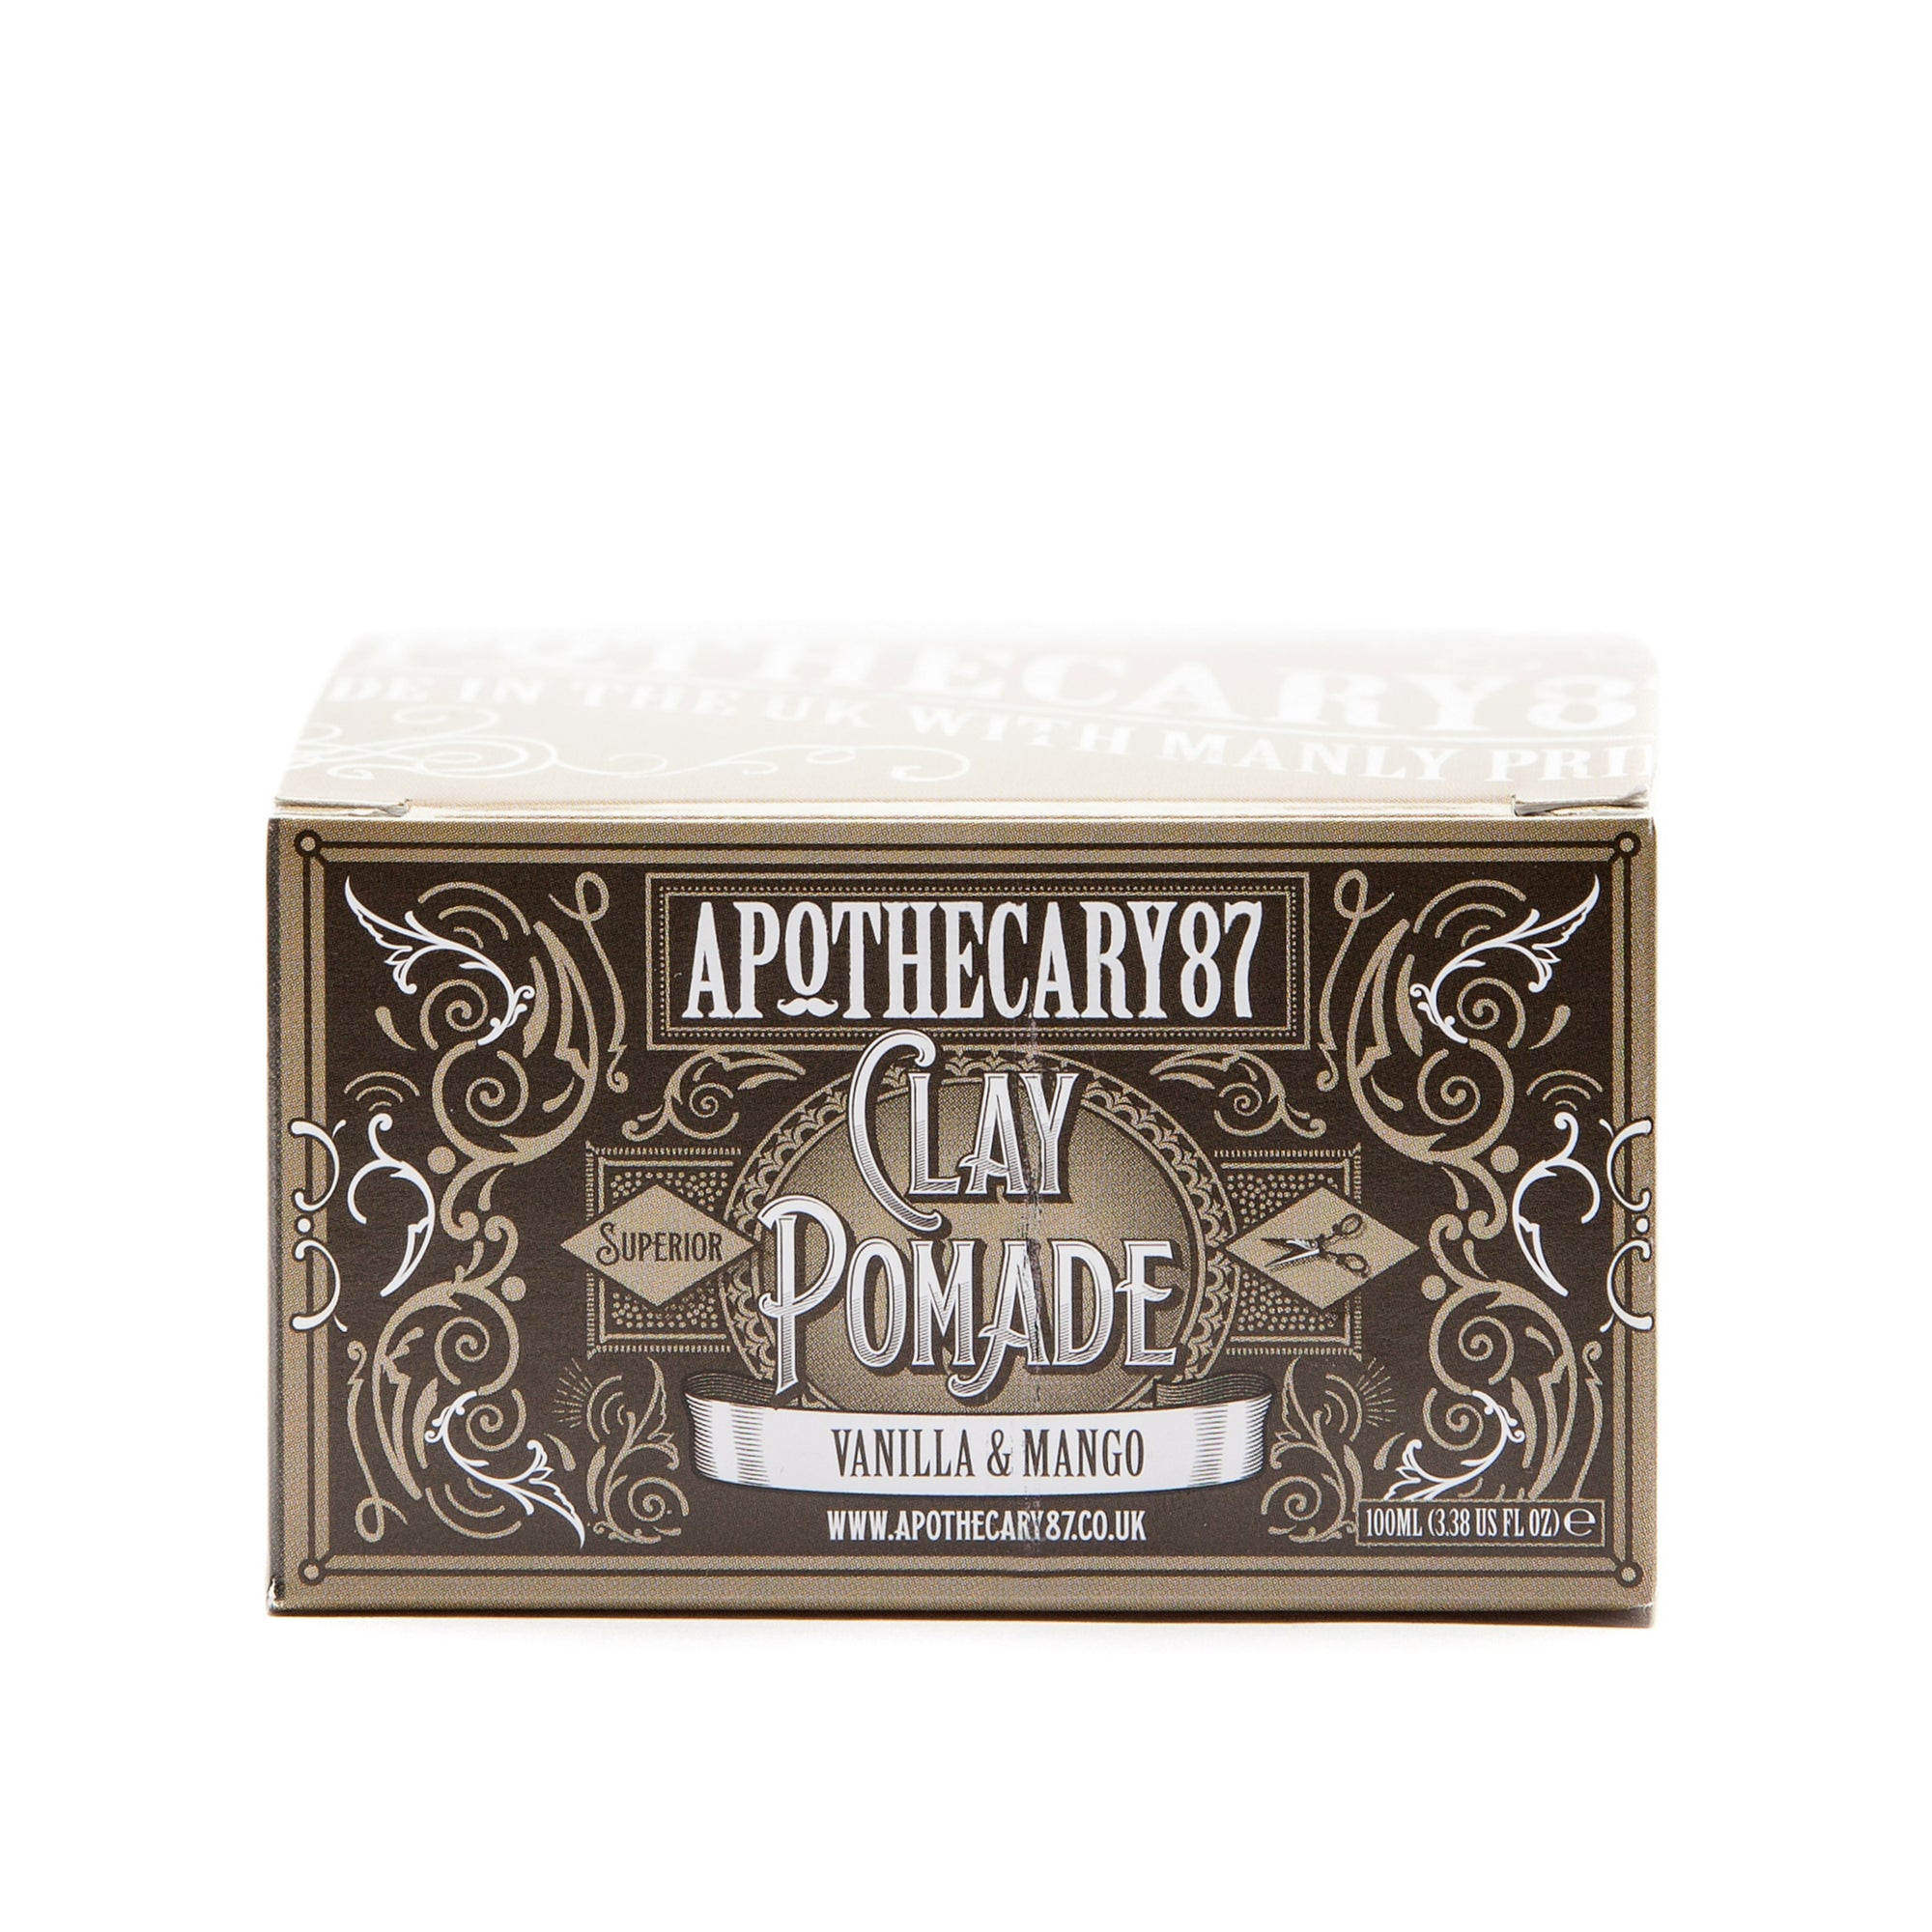 Apothecary87 Clay Pomade Matte Firm Hold Hair Styling Clay Box Front